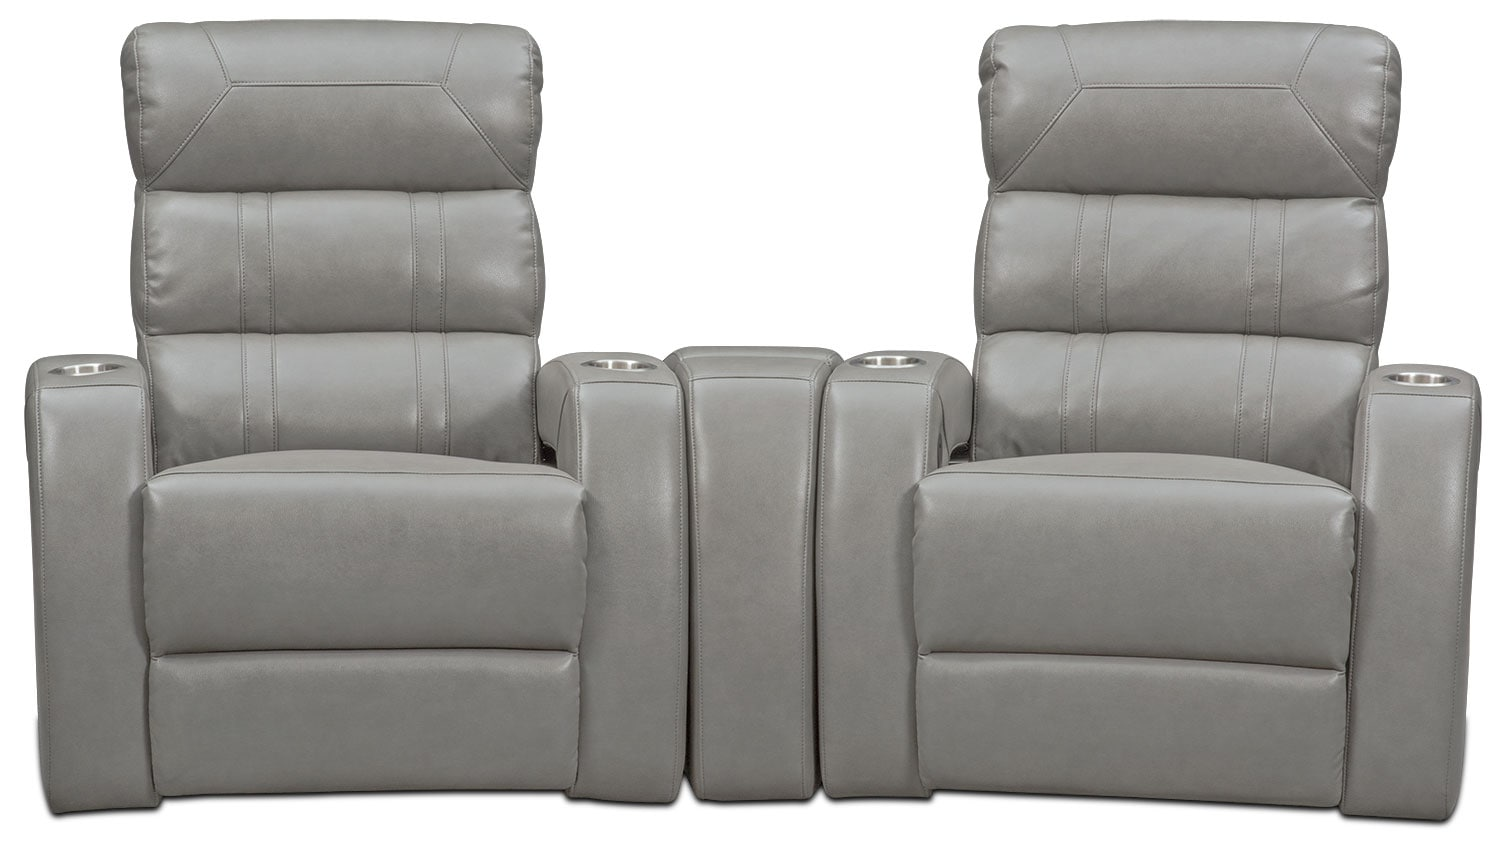 Living Room Furniture - Bravo 3-Piece Power Reclining Home Theater Sectional - Gray